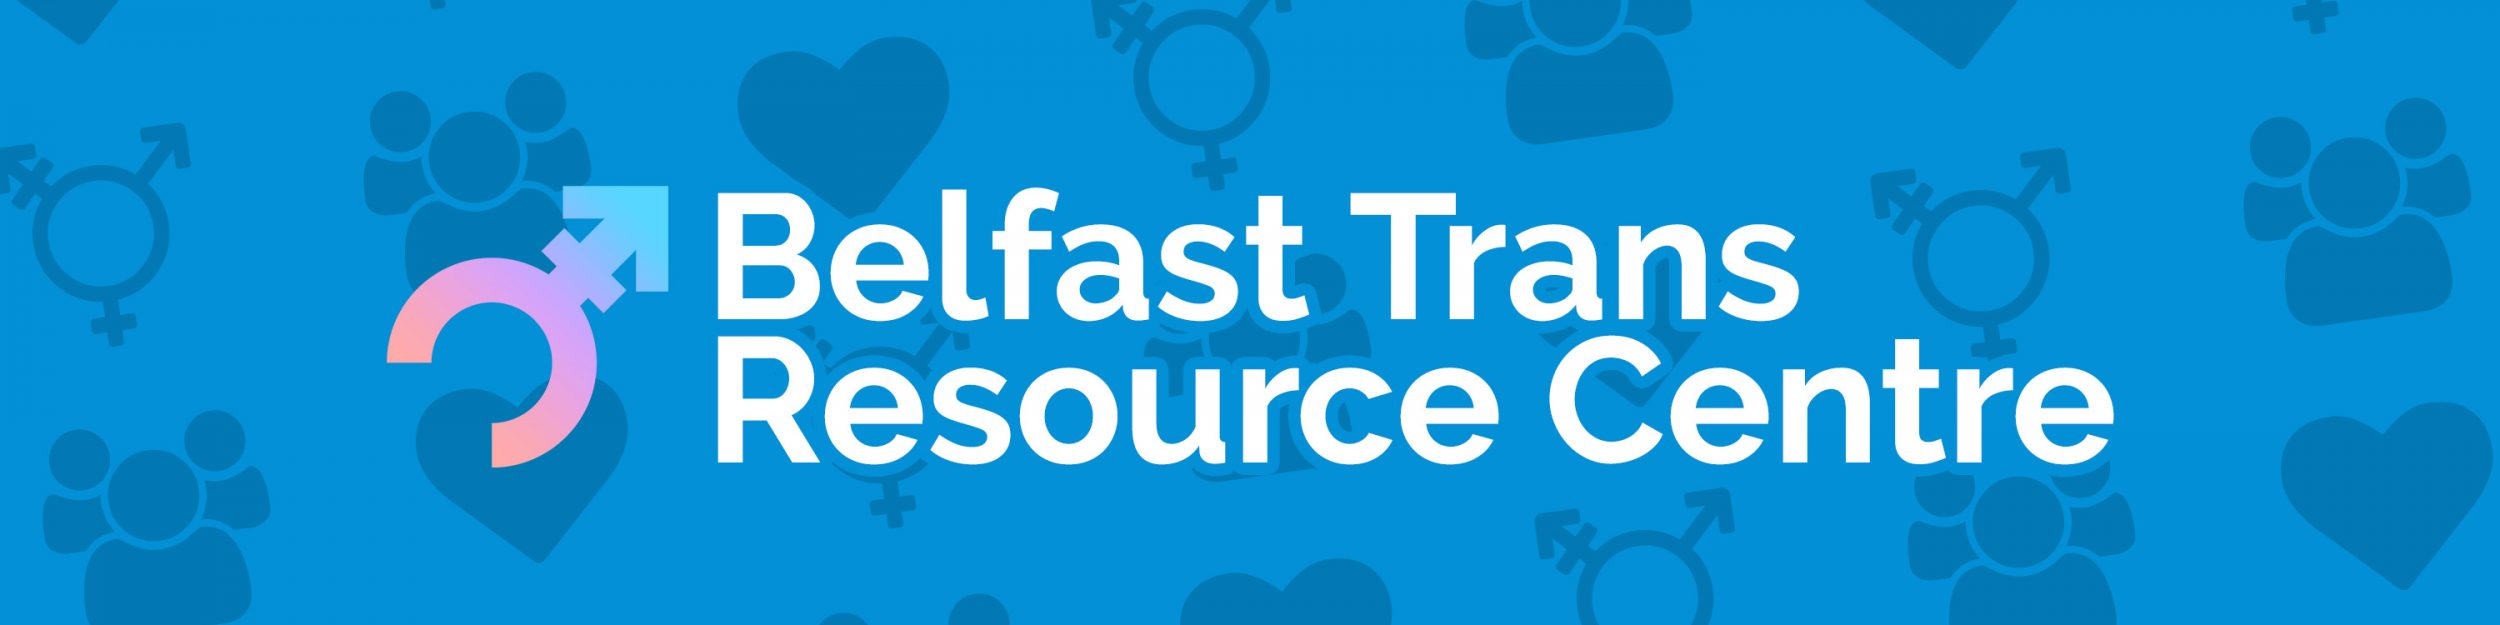 Belfast Trans Resource Centre